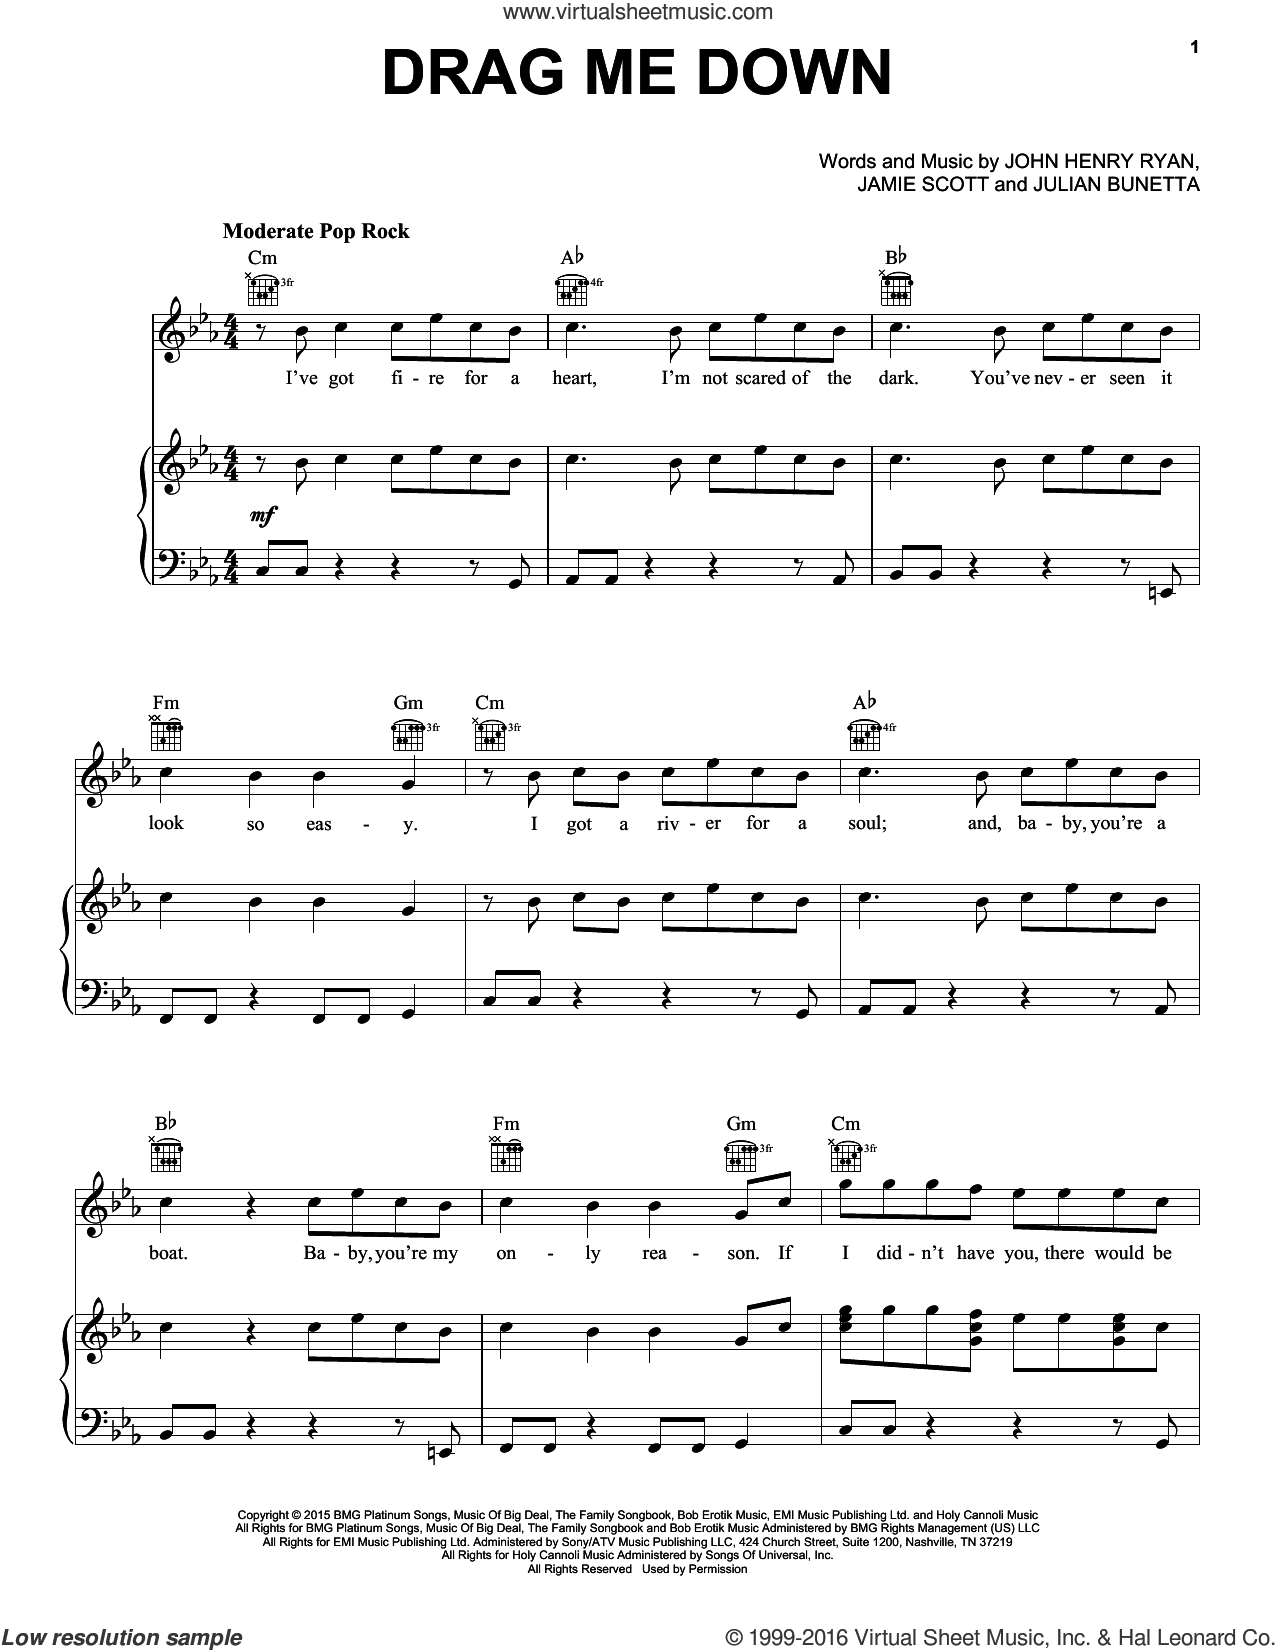 Drag Me Down sheet music for voice, piano or guitar plus backing track by One Direction, Jamie Scott and Julian Bunetta, intermediate voice, piano or guitar plus backing track. Score Image Preview.